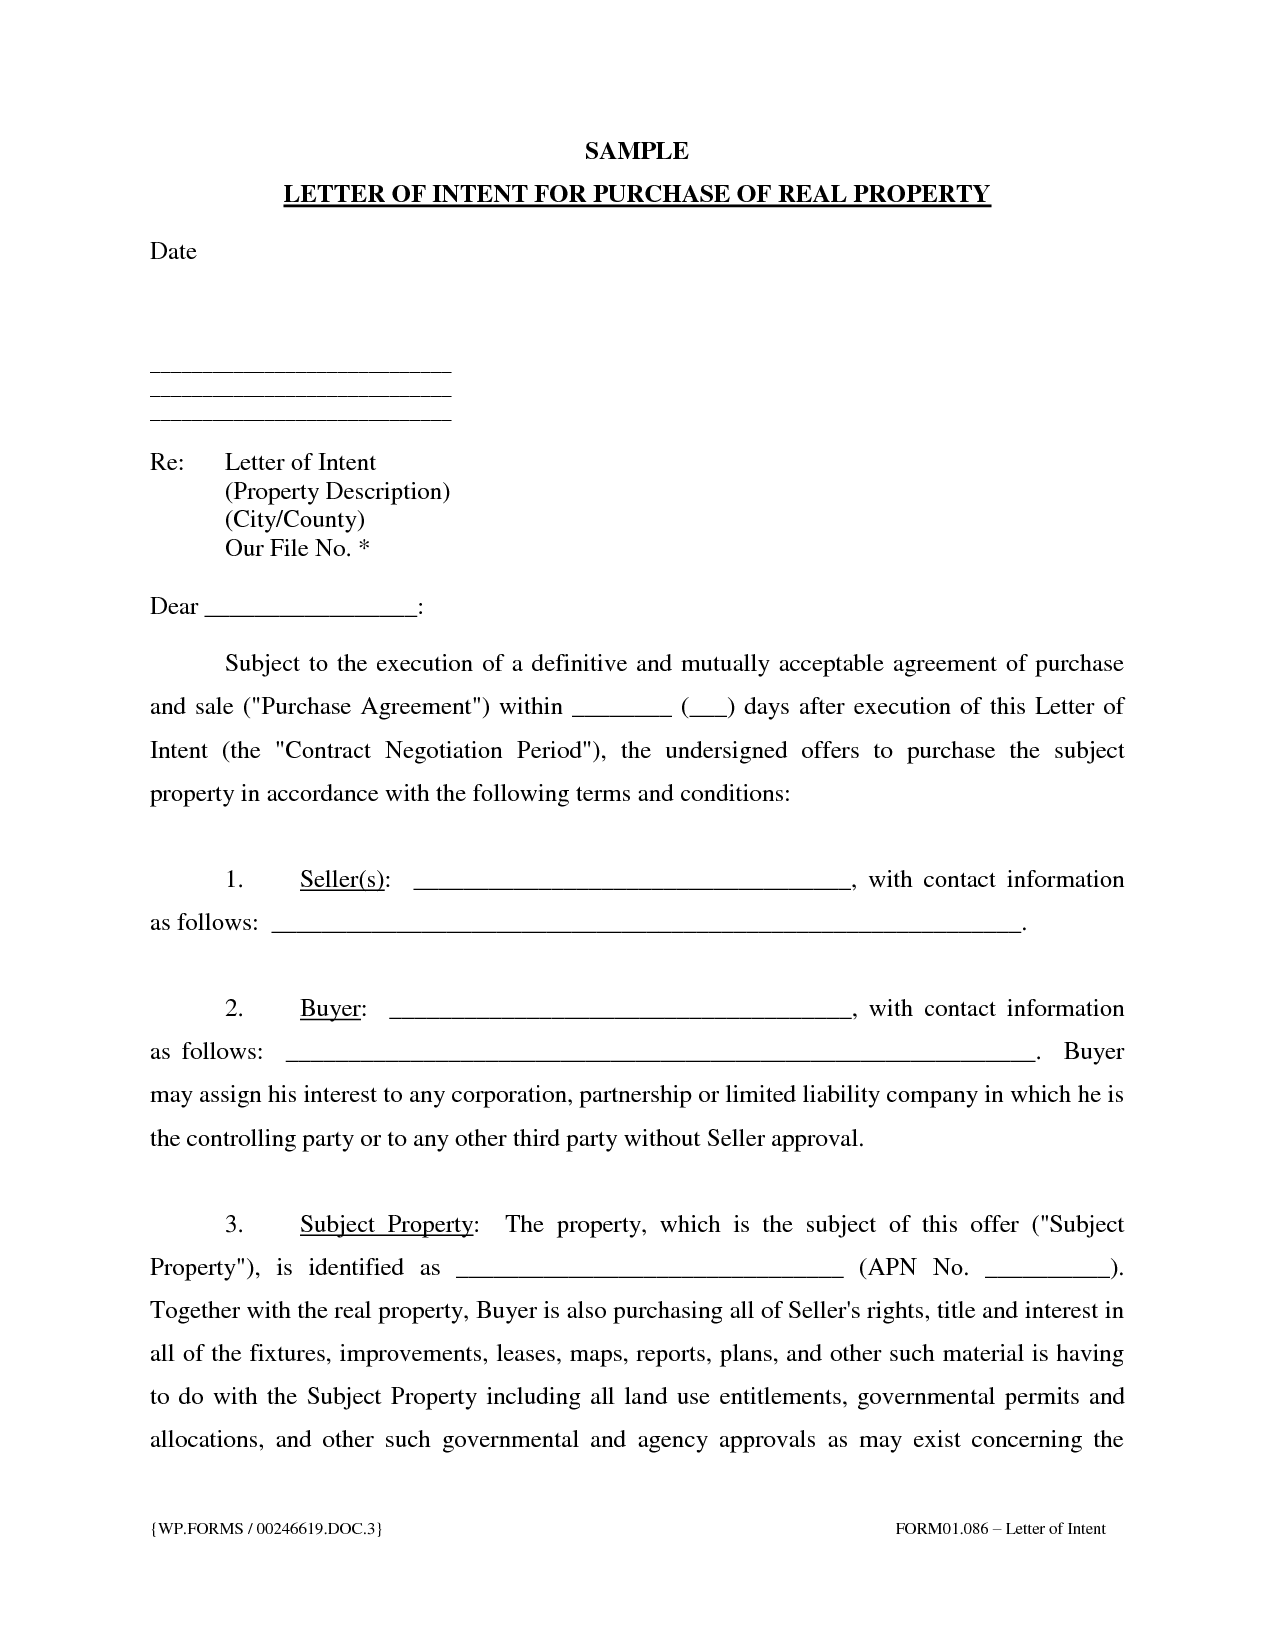 Sample letter of intent to purchase real estate free for Letter of intent to purchase property template